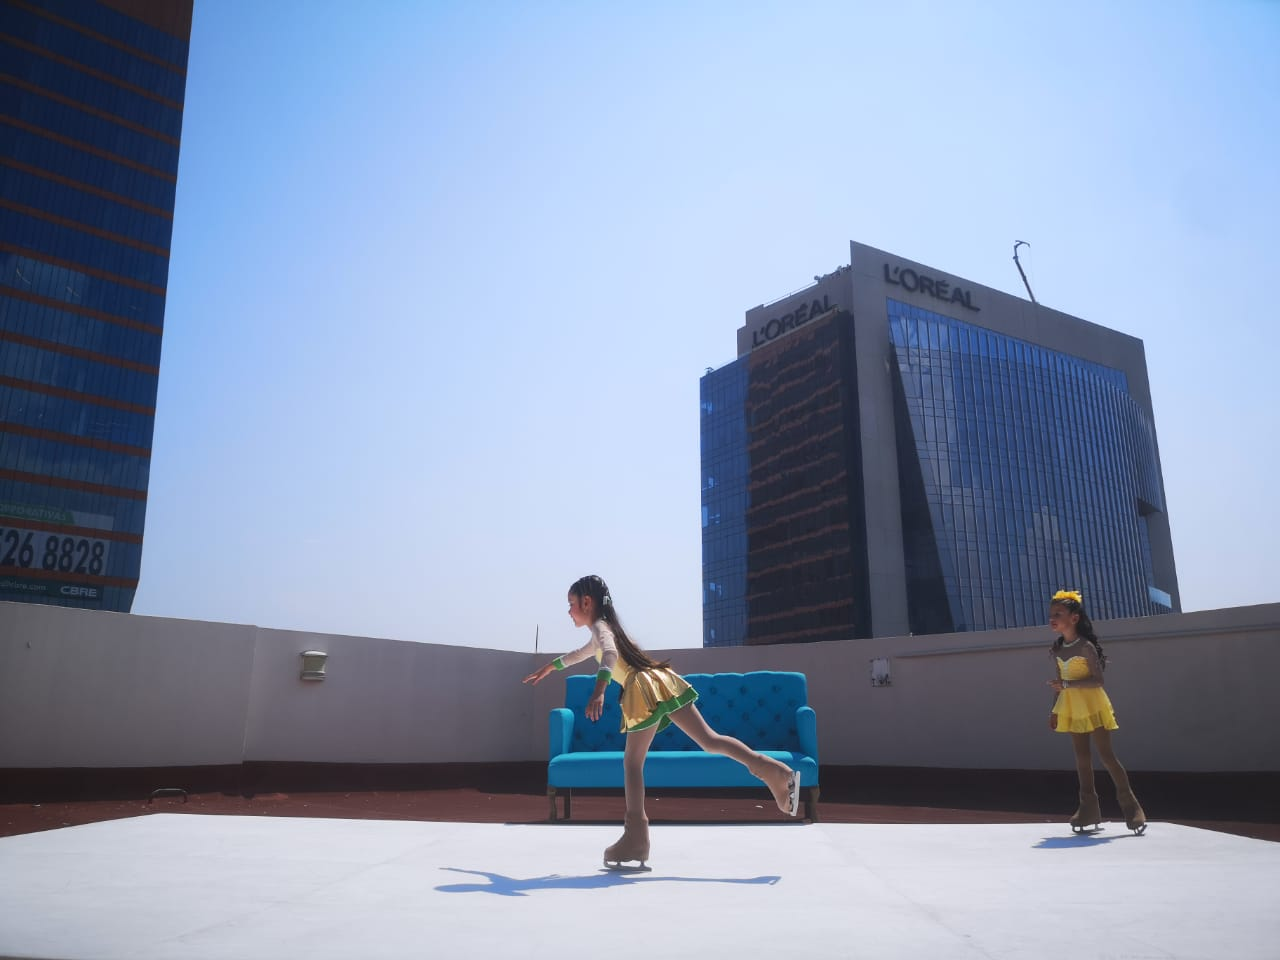 Glice Synthetic Ice Home Diaries – Figure Skating on Rooftop Terrace in Mexico City